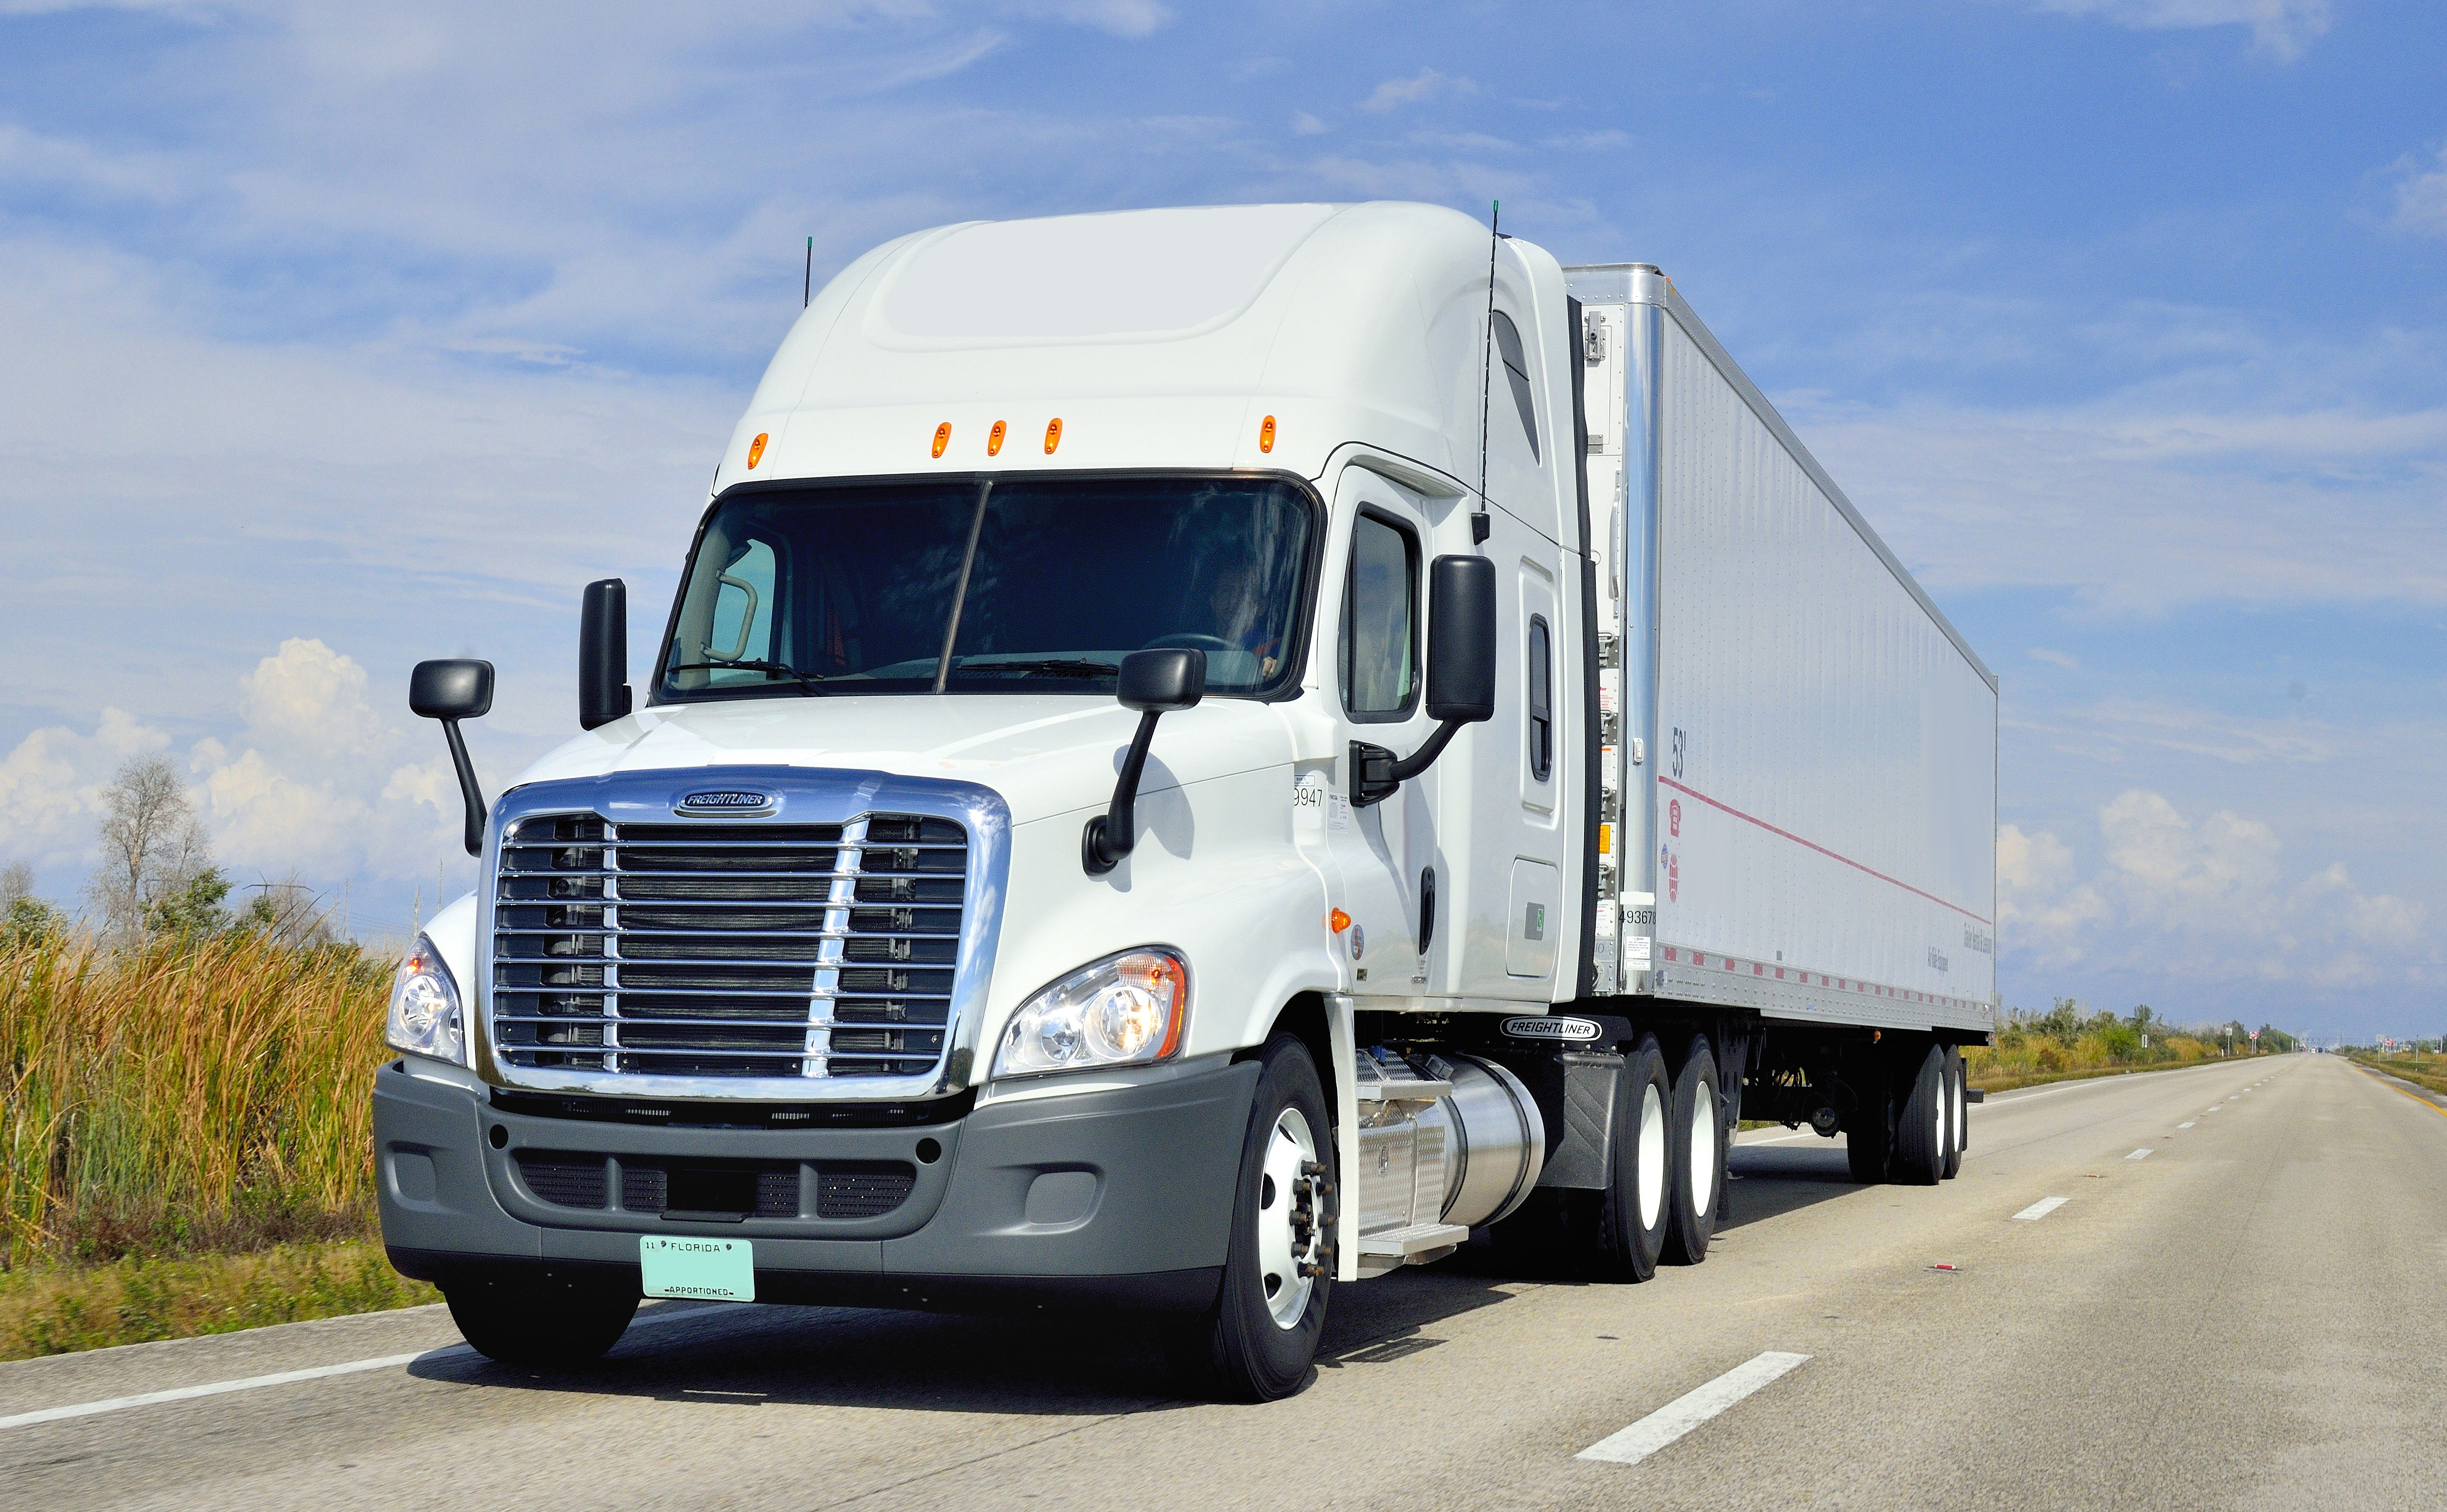 freightliner profesionales a trailer